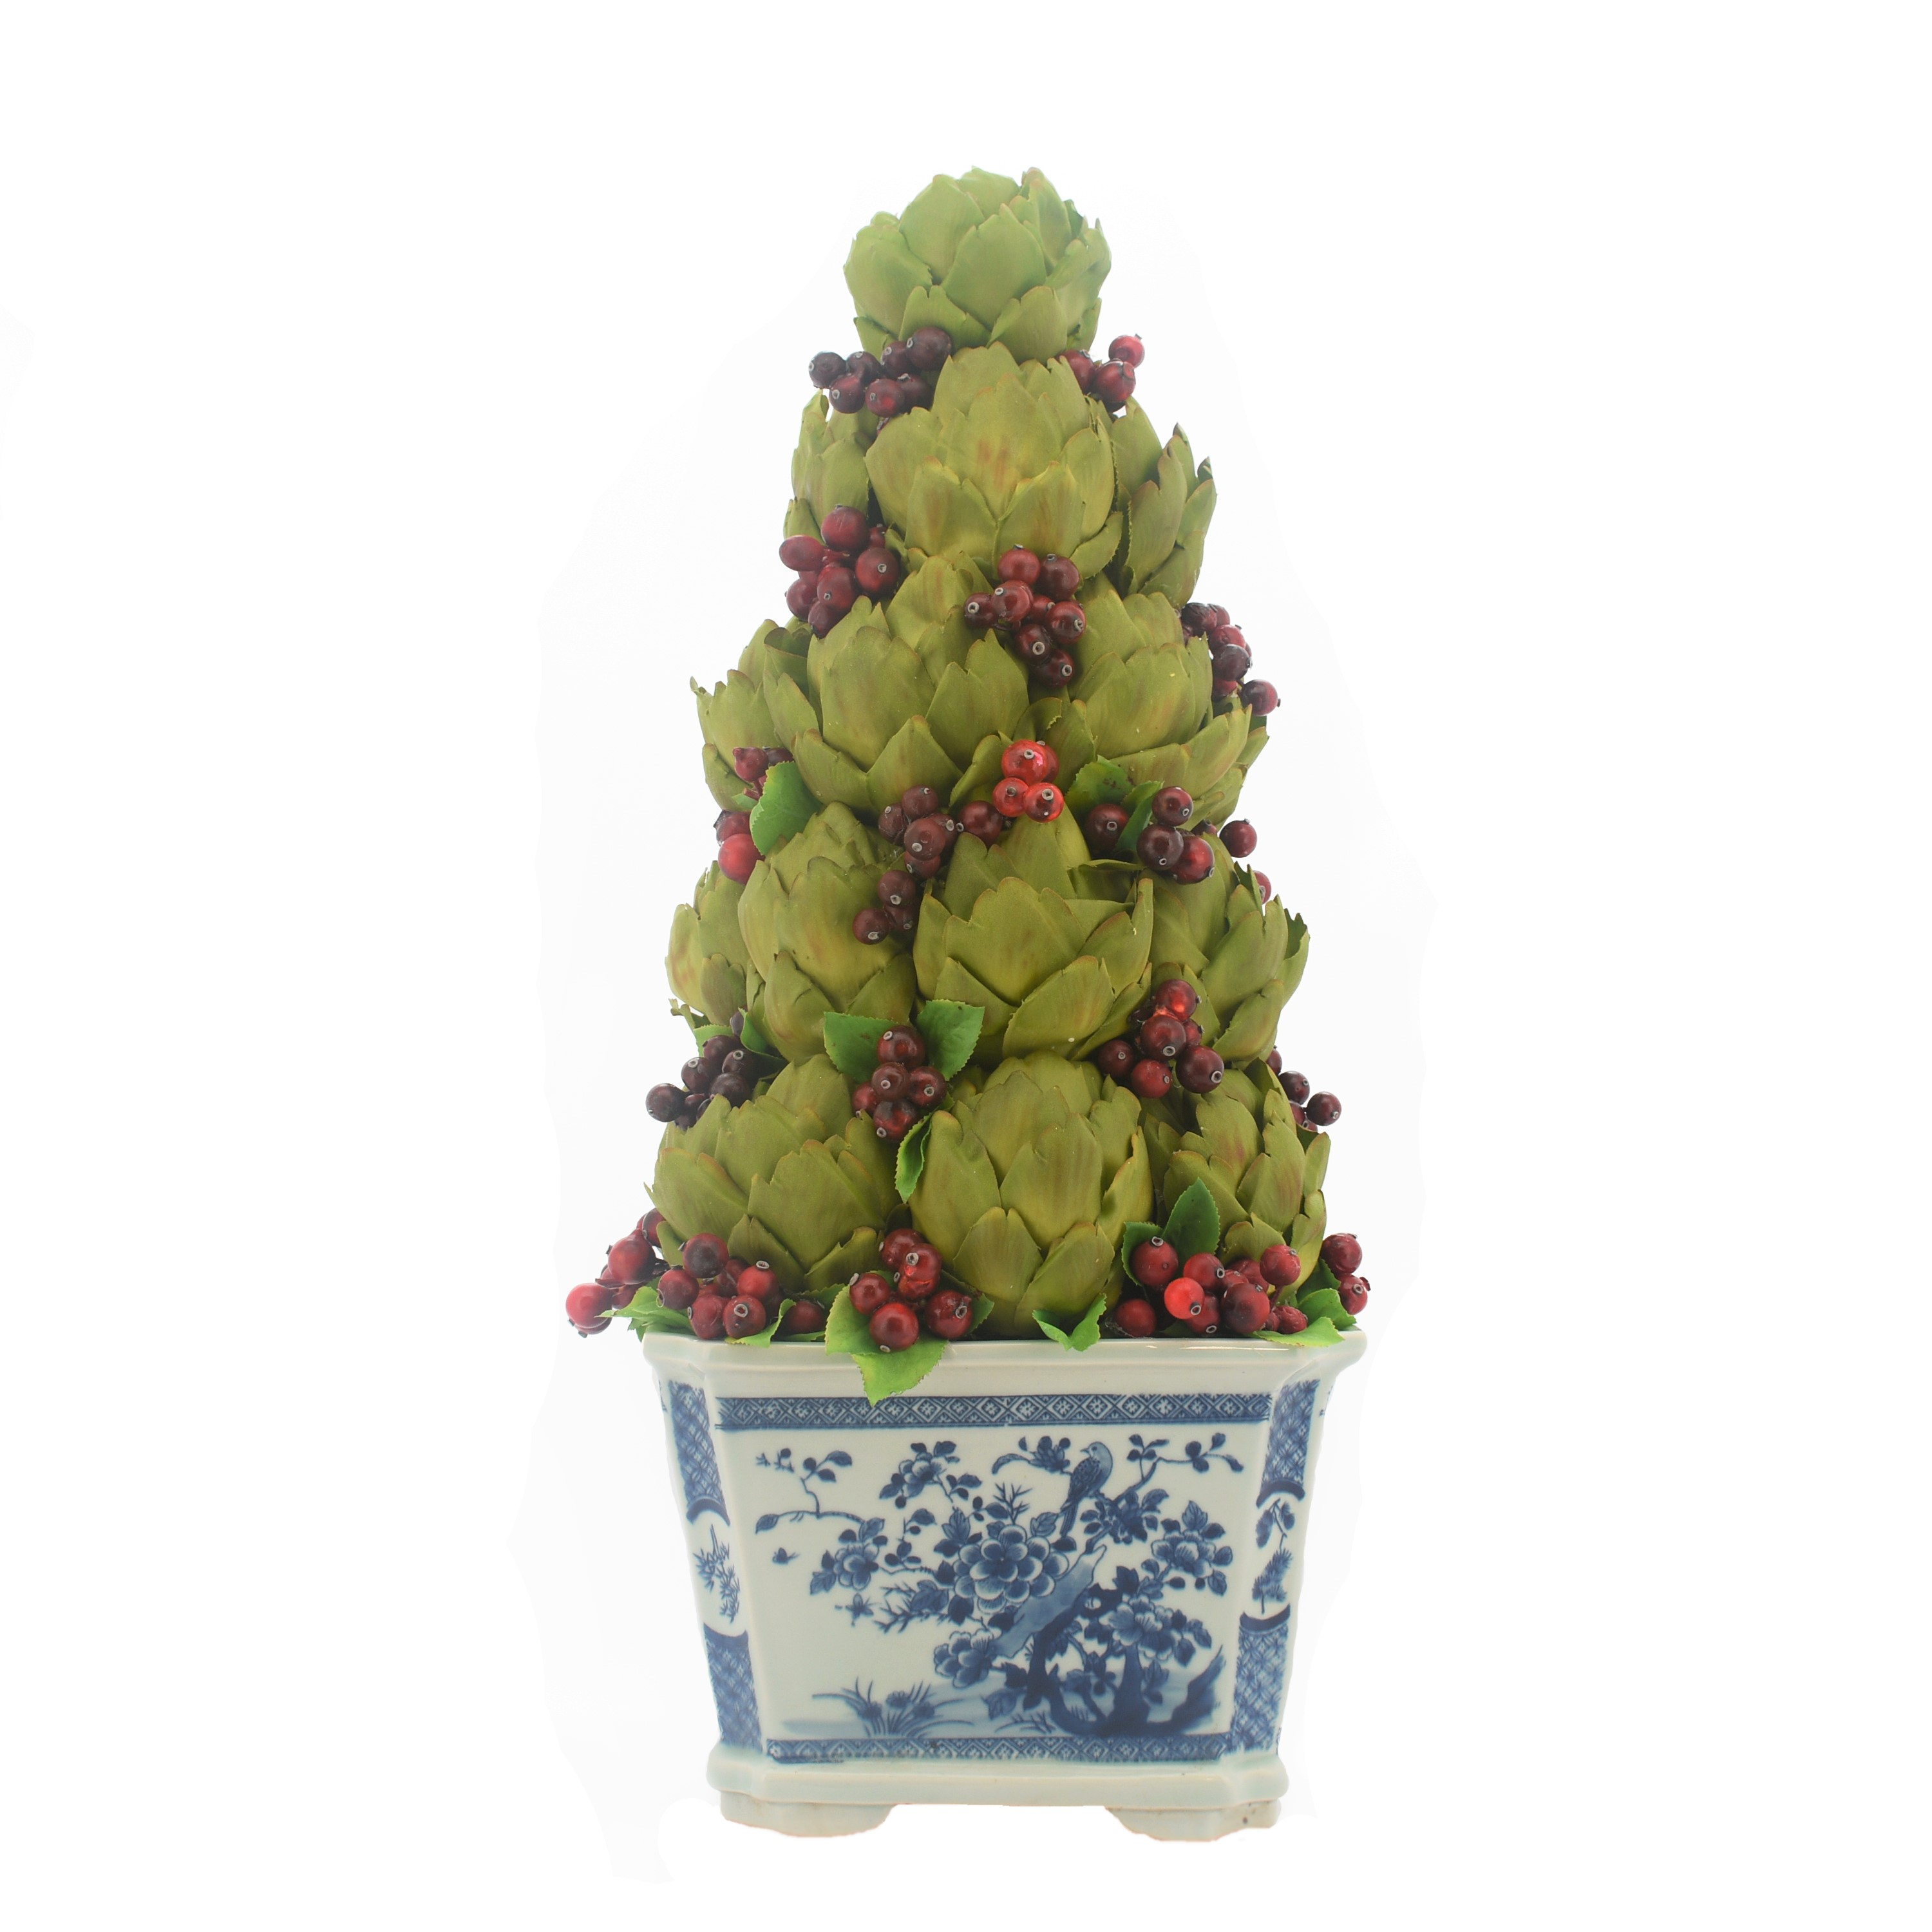 Incredible new artichoke/red berry topiary in blue/white planter